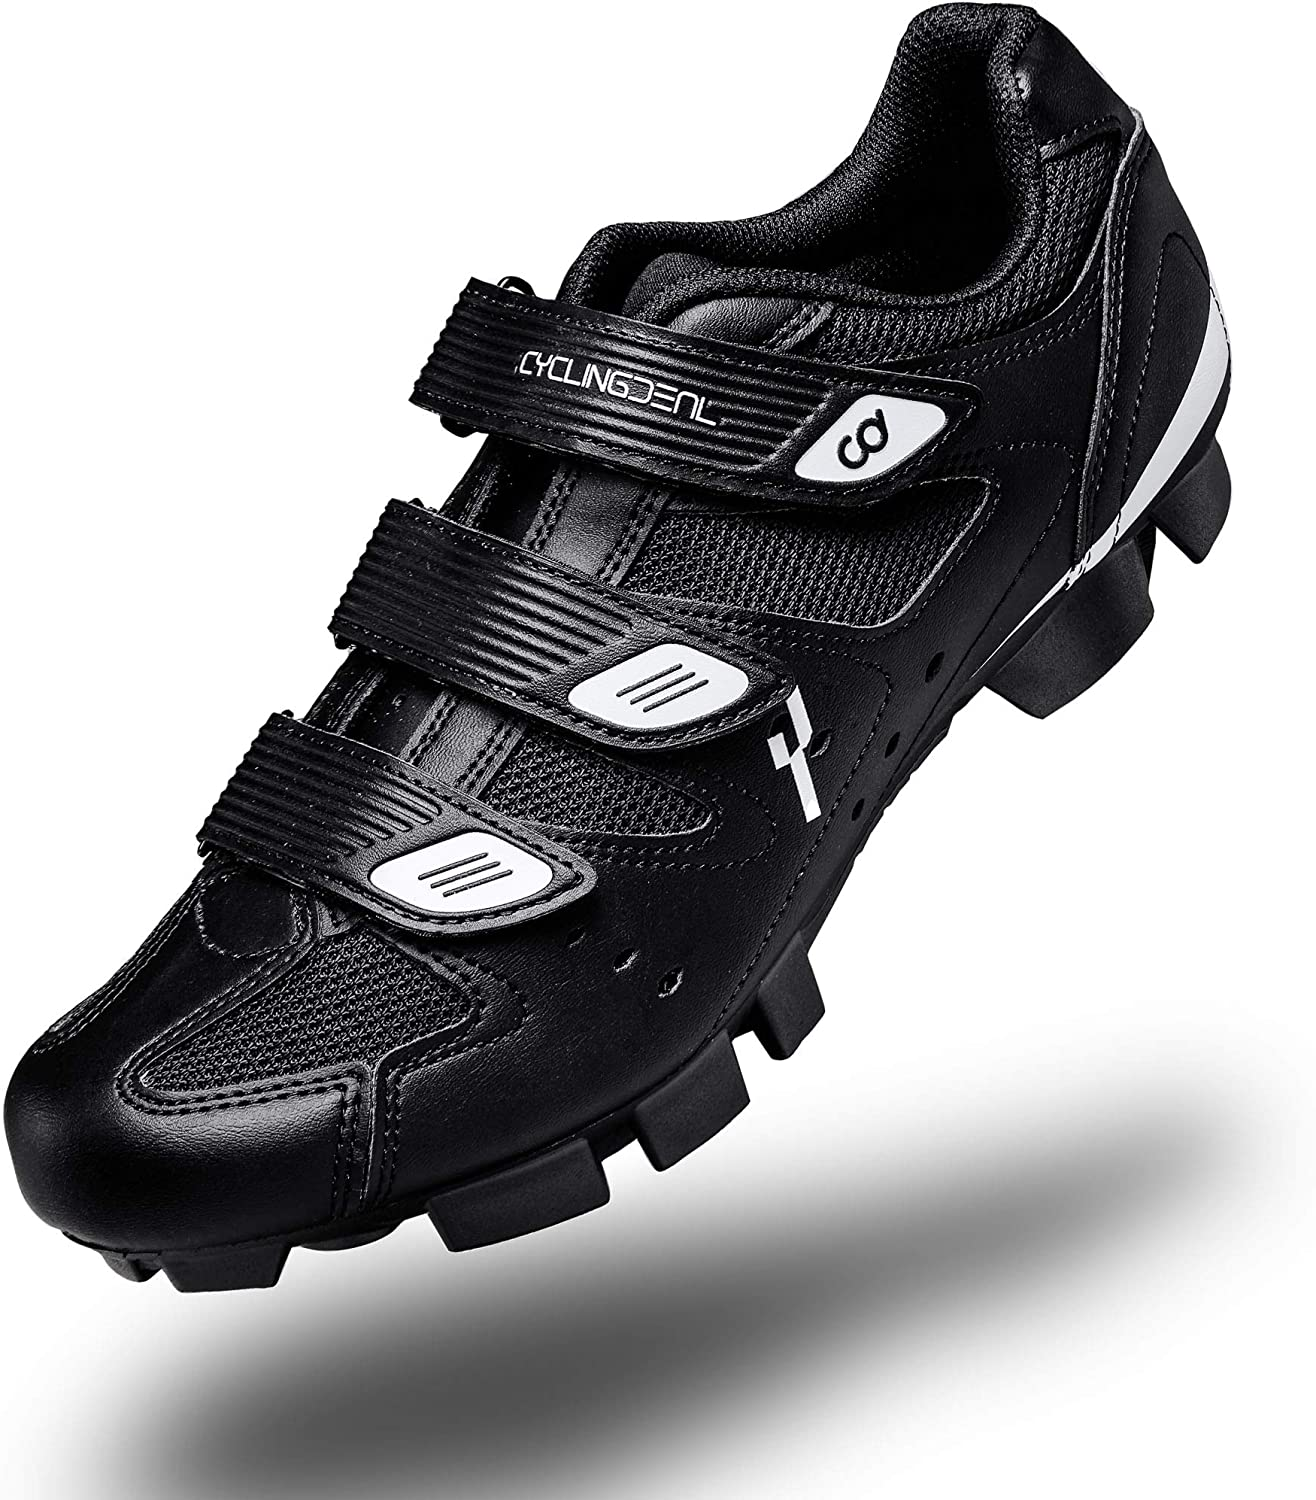 CyclingDeal Mountain Bicycle Bike Men's store MTB Cycling Black Shoes Japan's largest assortment